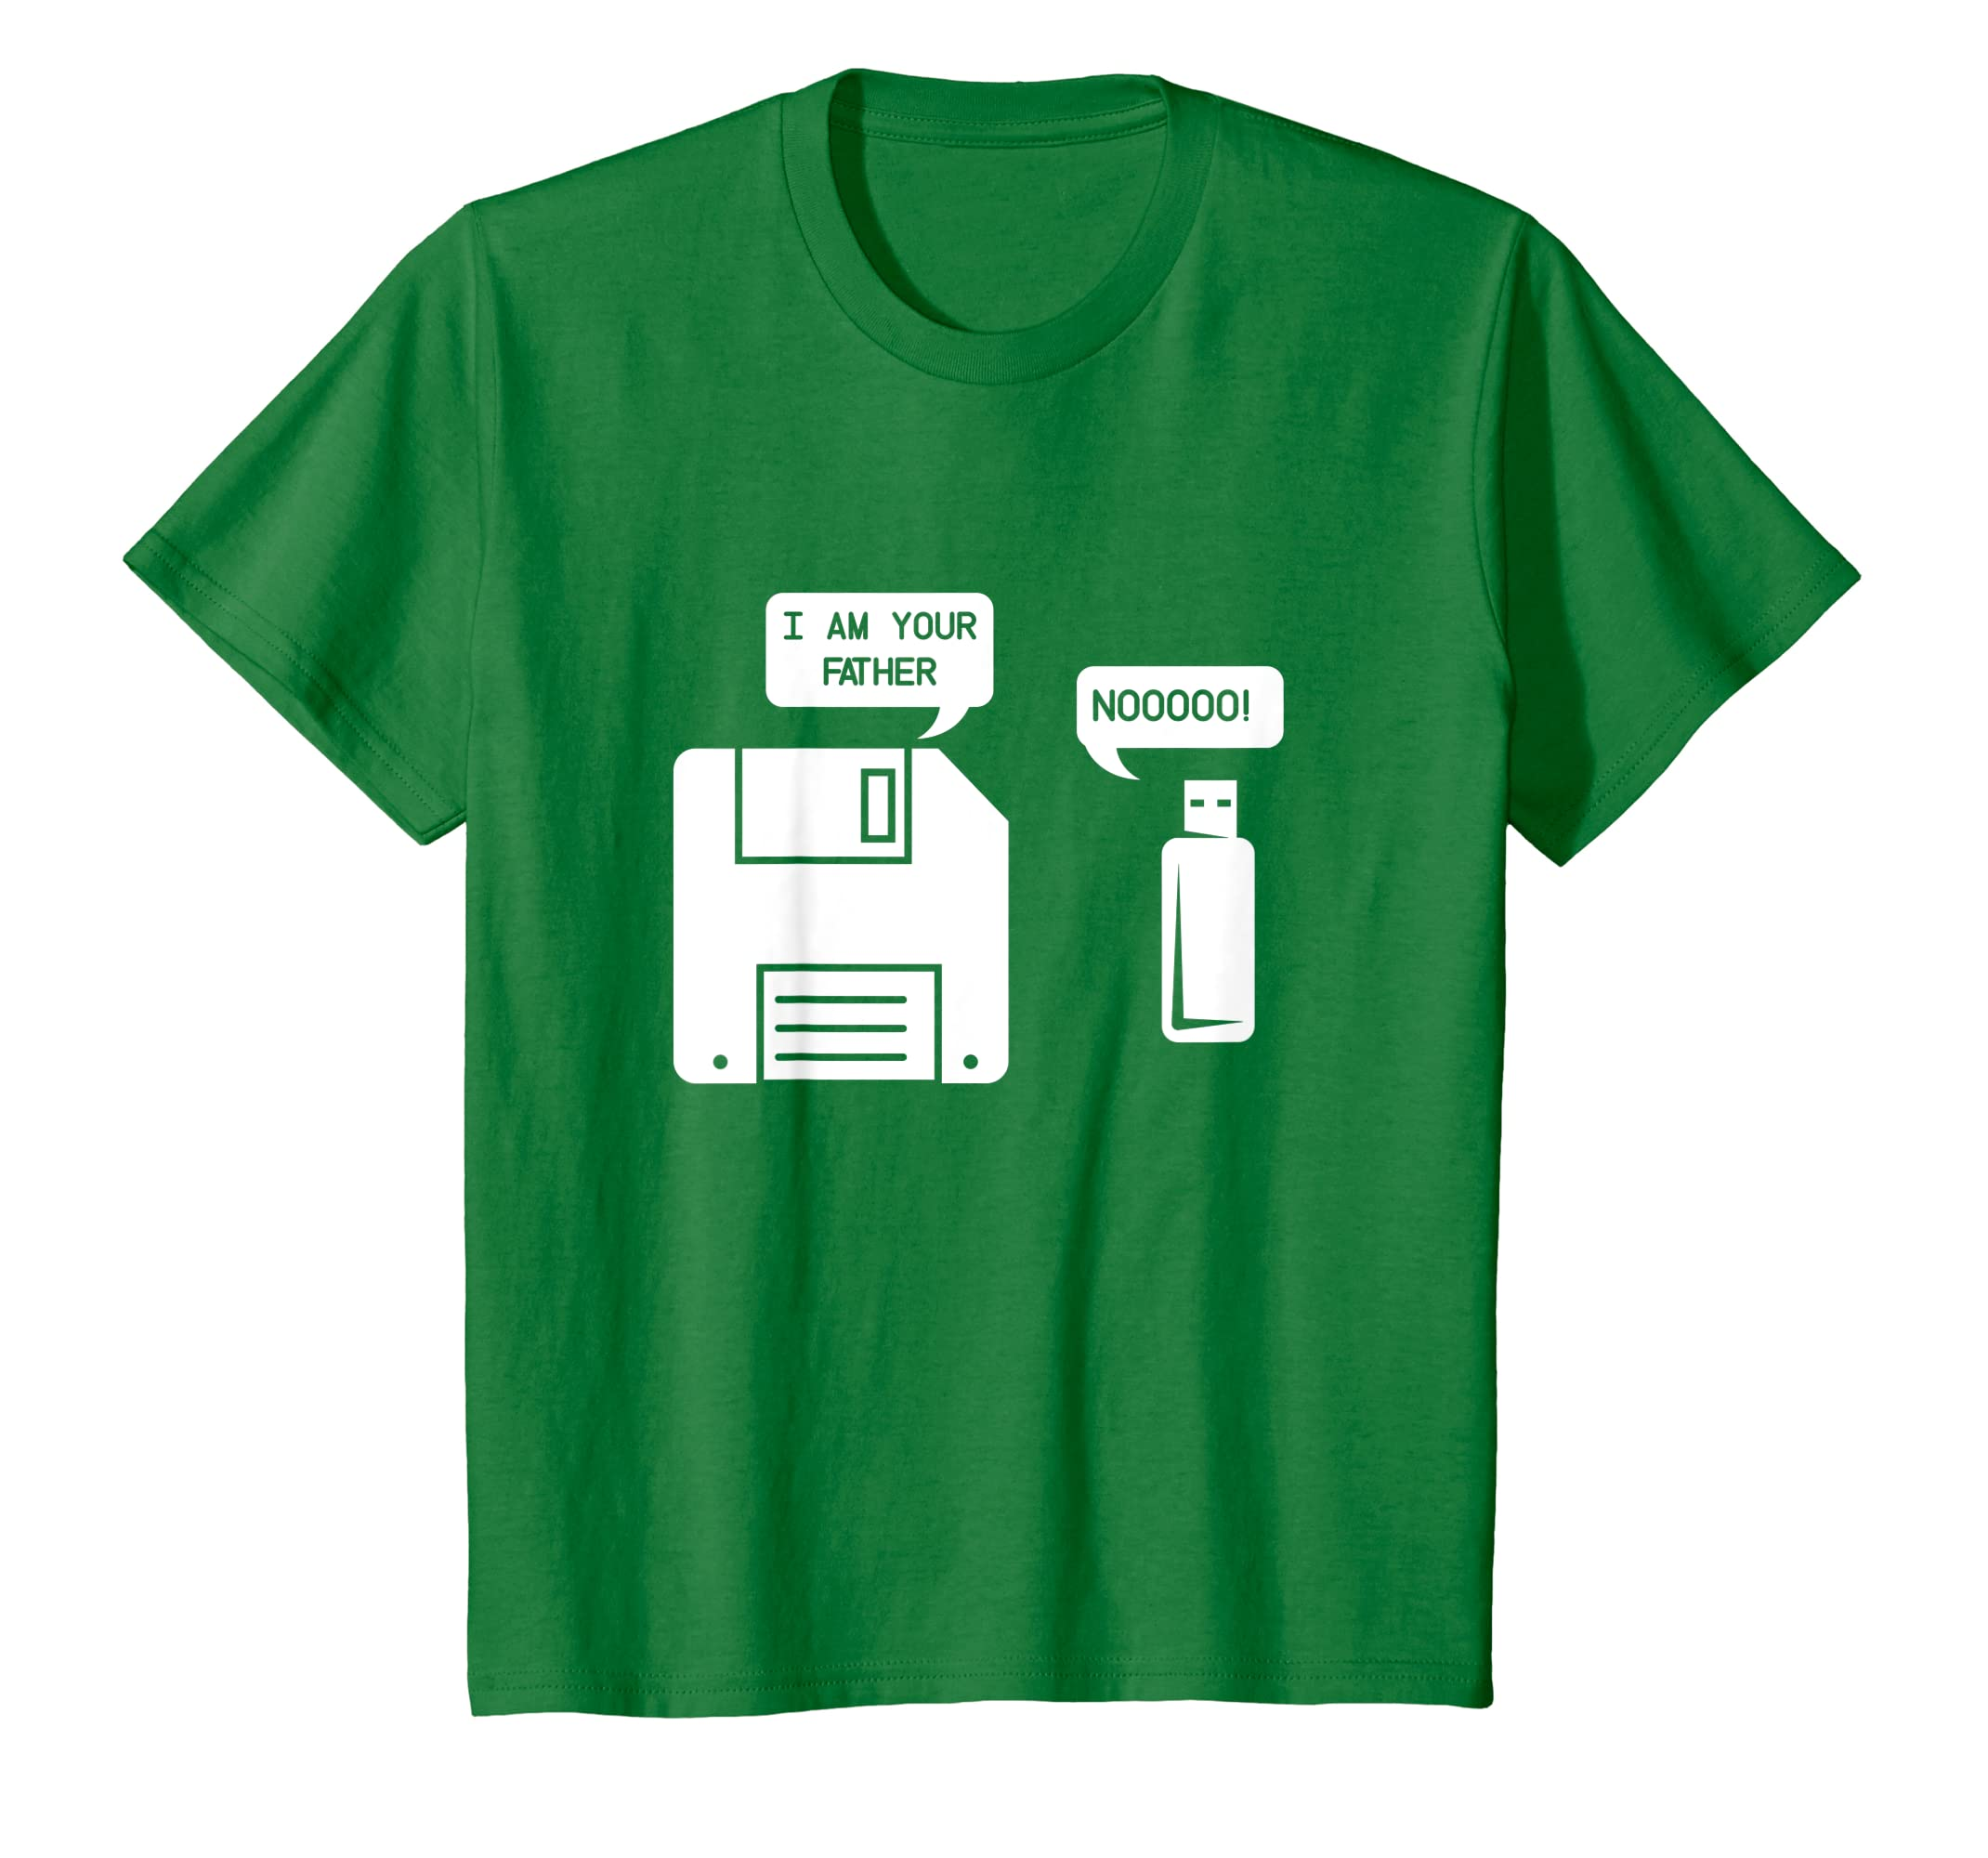 d5622194 Amazon.com: USB Floppy Disk I am Your Father T-shirt, Geek Gifts Tshirt:  Clothing